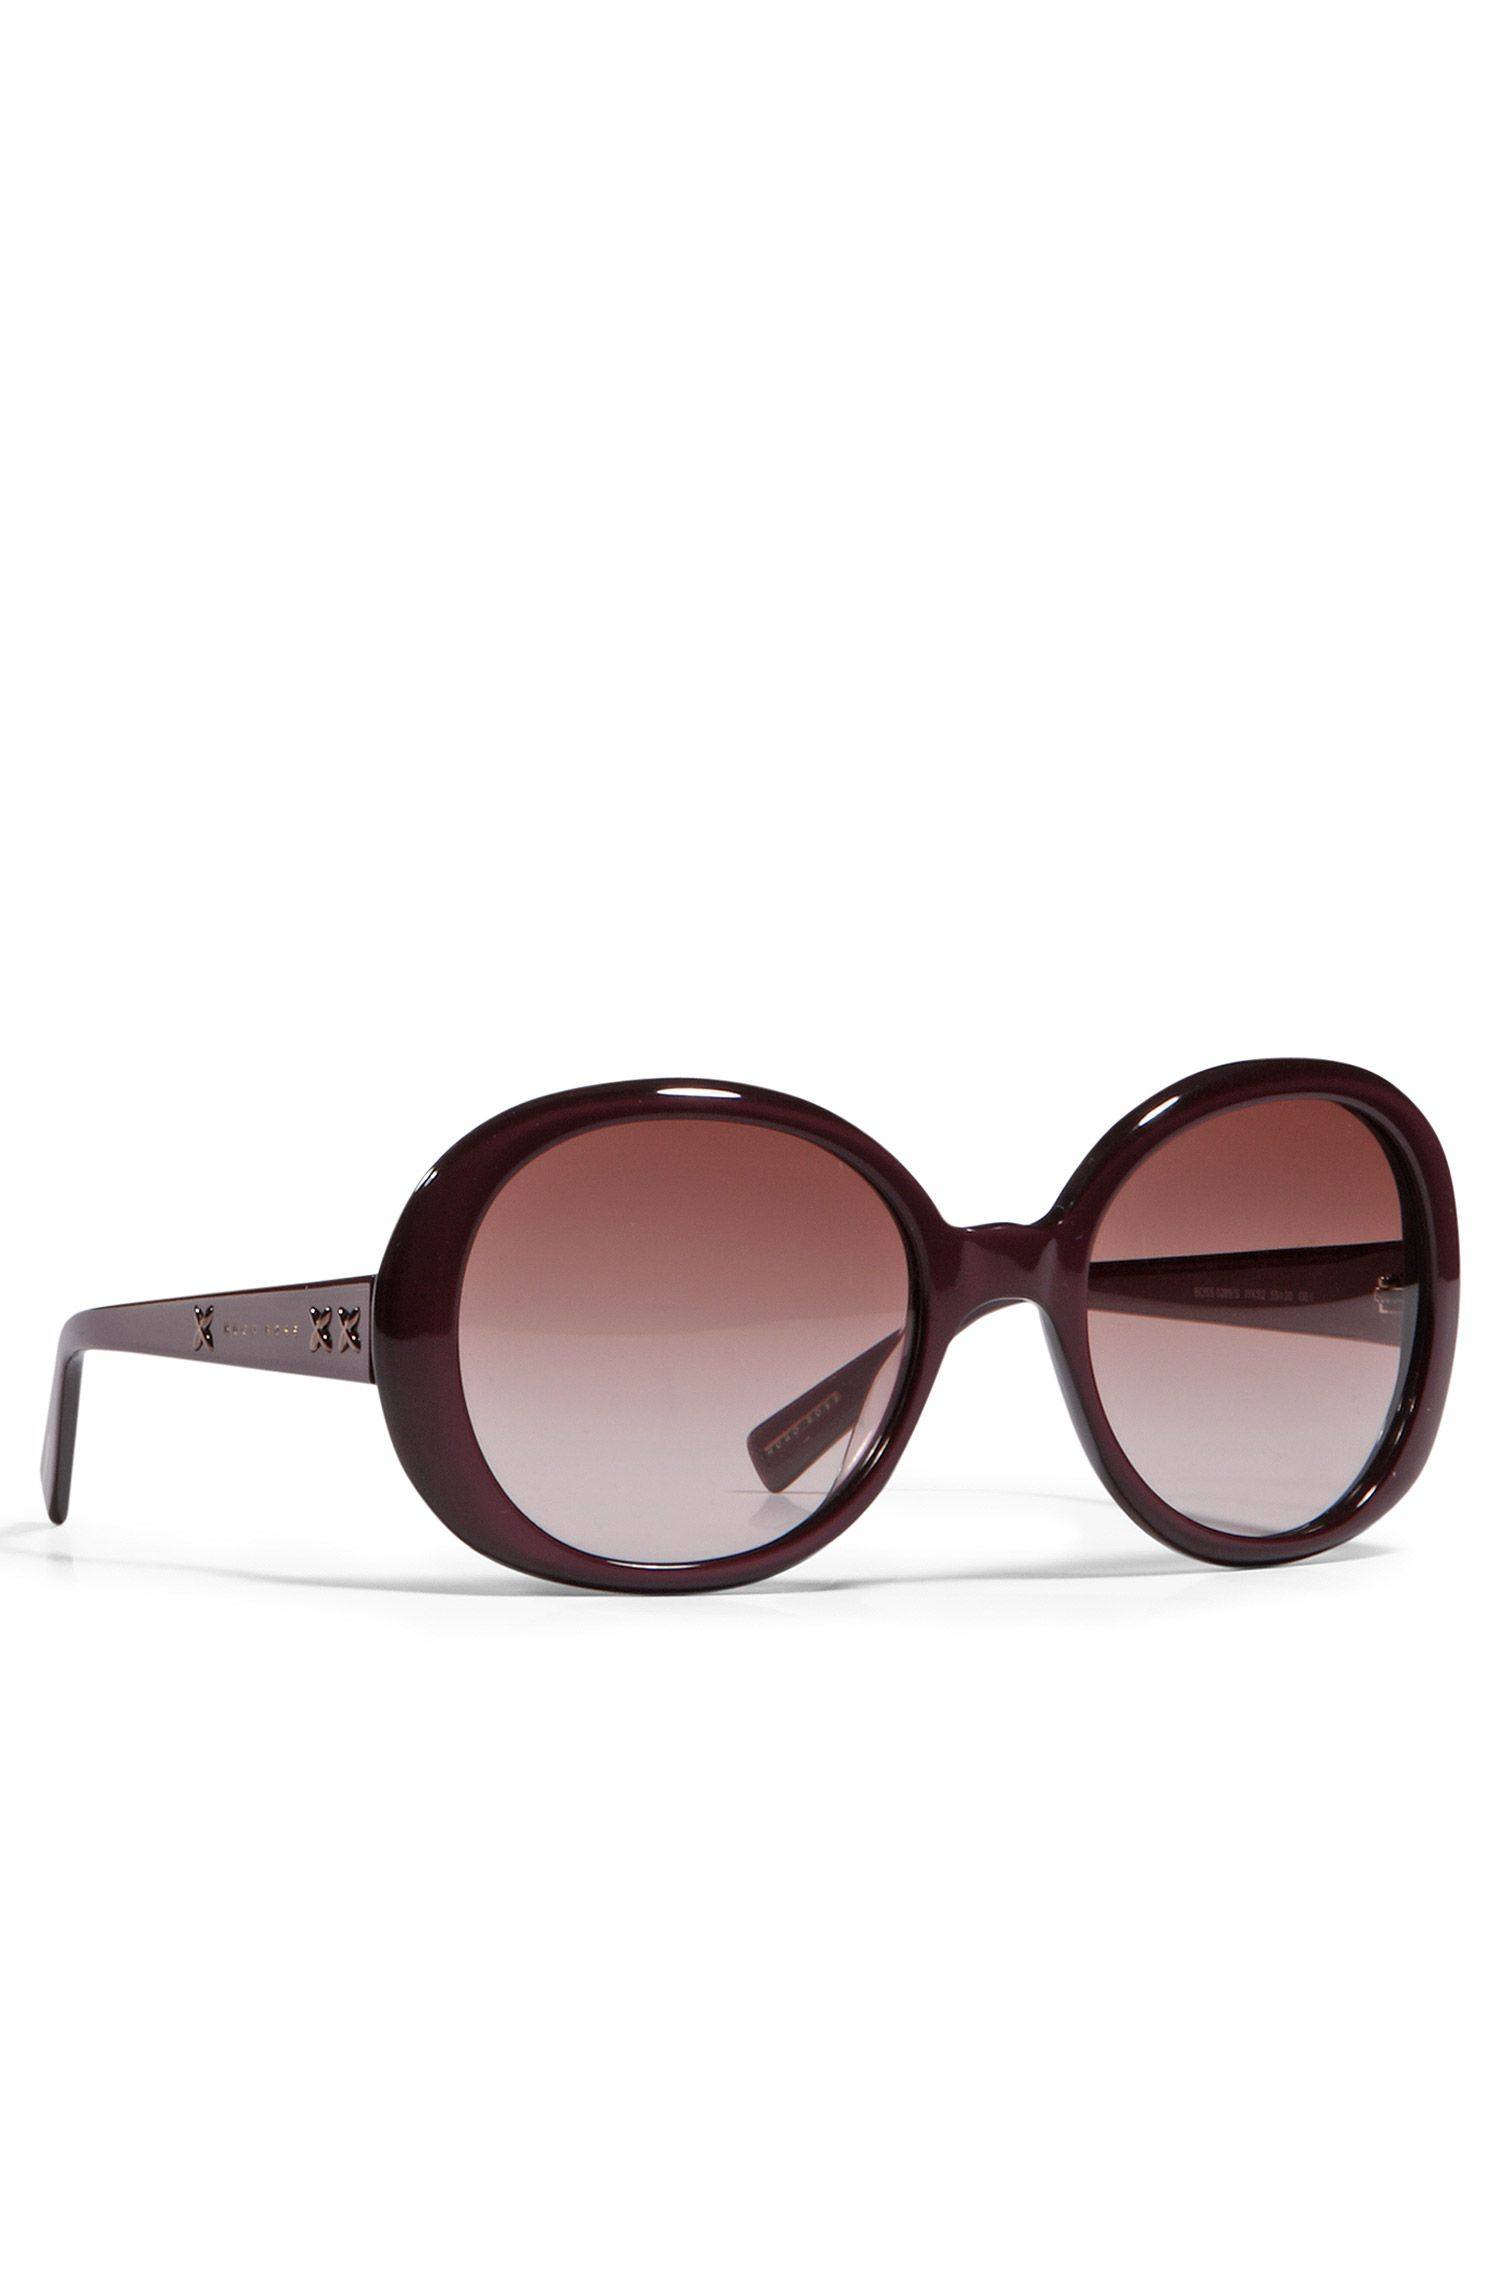 Damensonnenbrille in Oversize-Form